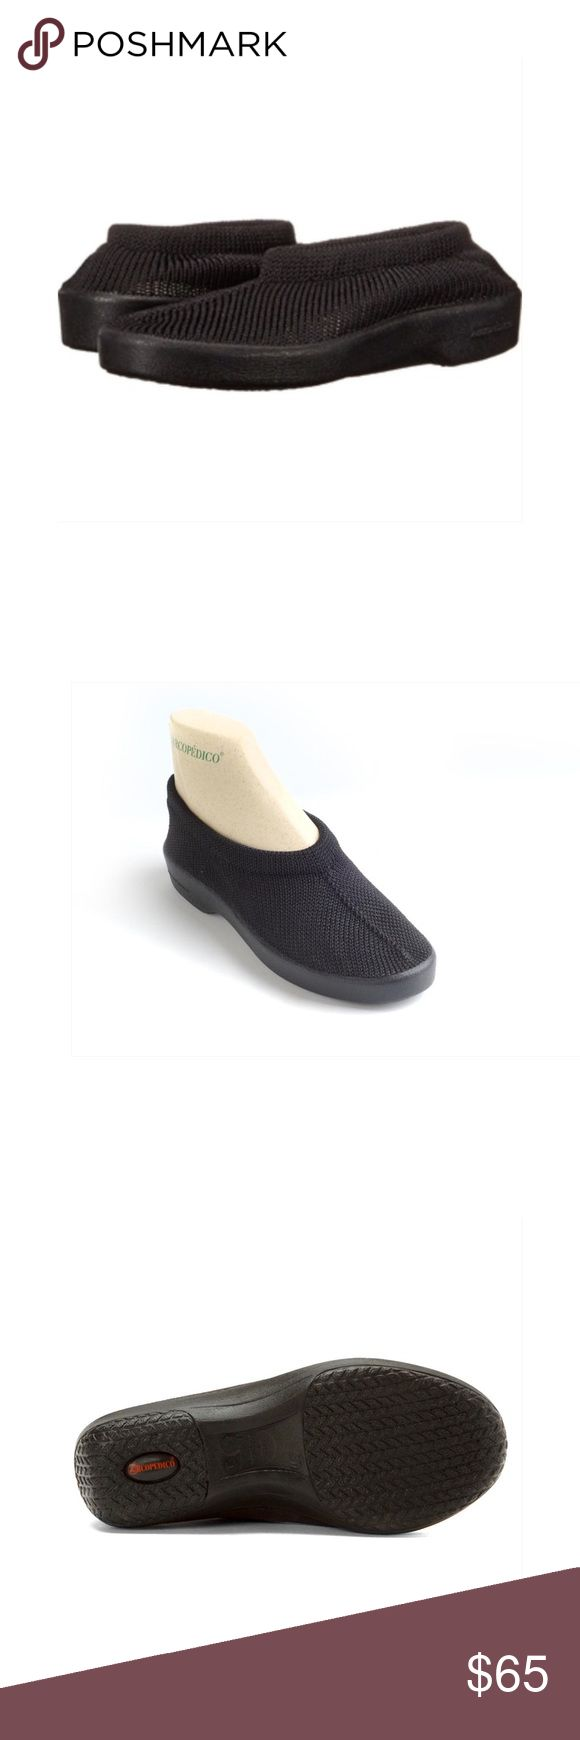 """Arcopedico Men's Slip-on Shoes - Black Size 11.5. European size 45. The Arcopedico New Sec is a classic slip-on that has a reputation for comfort that dates back to 1966. Try a pair for yourself and see what a difference they make to your feet. The Classic New Sec features soft, breathable knitted uppers that shape to the foot, twin arch support bio degradable PU non-slip sole, leather insole, and an anatomic footbed for correct weight distribution. Machine washable. Hang to dry. 1"""" Heel…"""